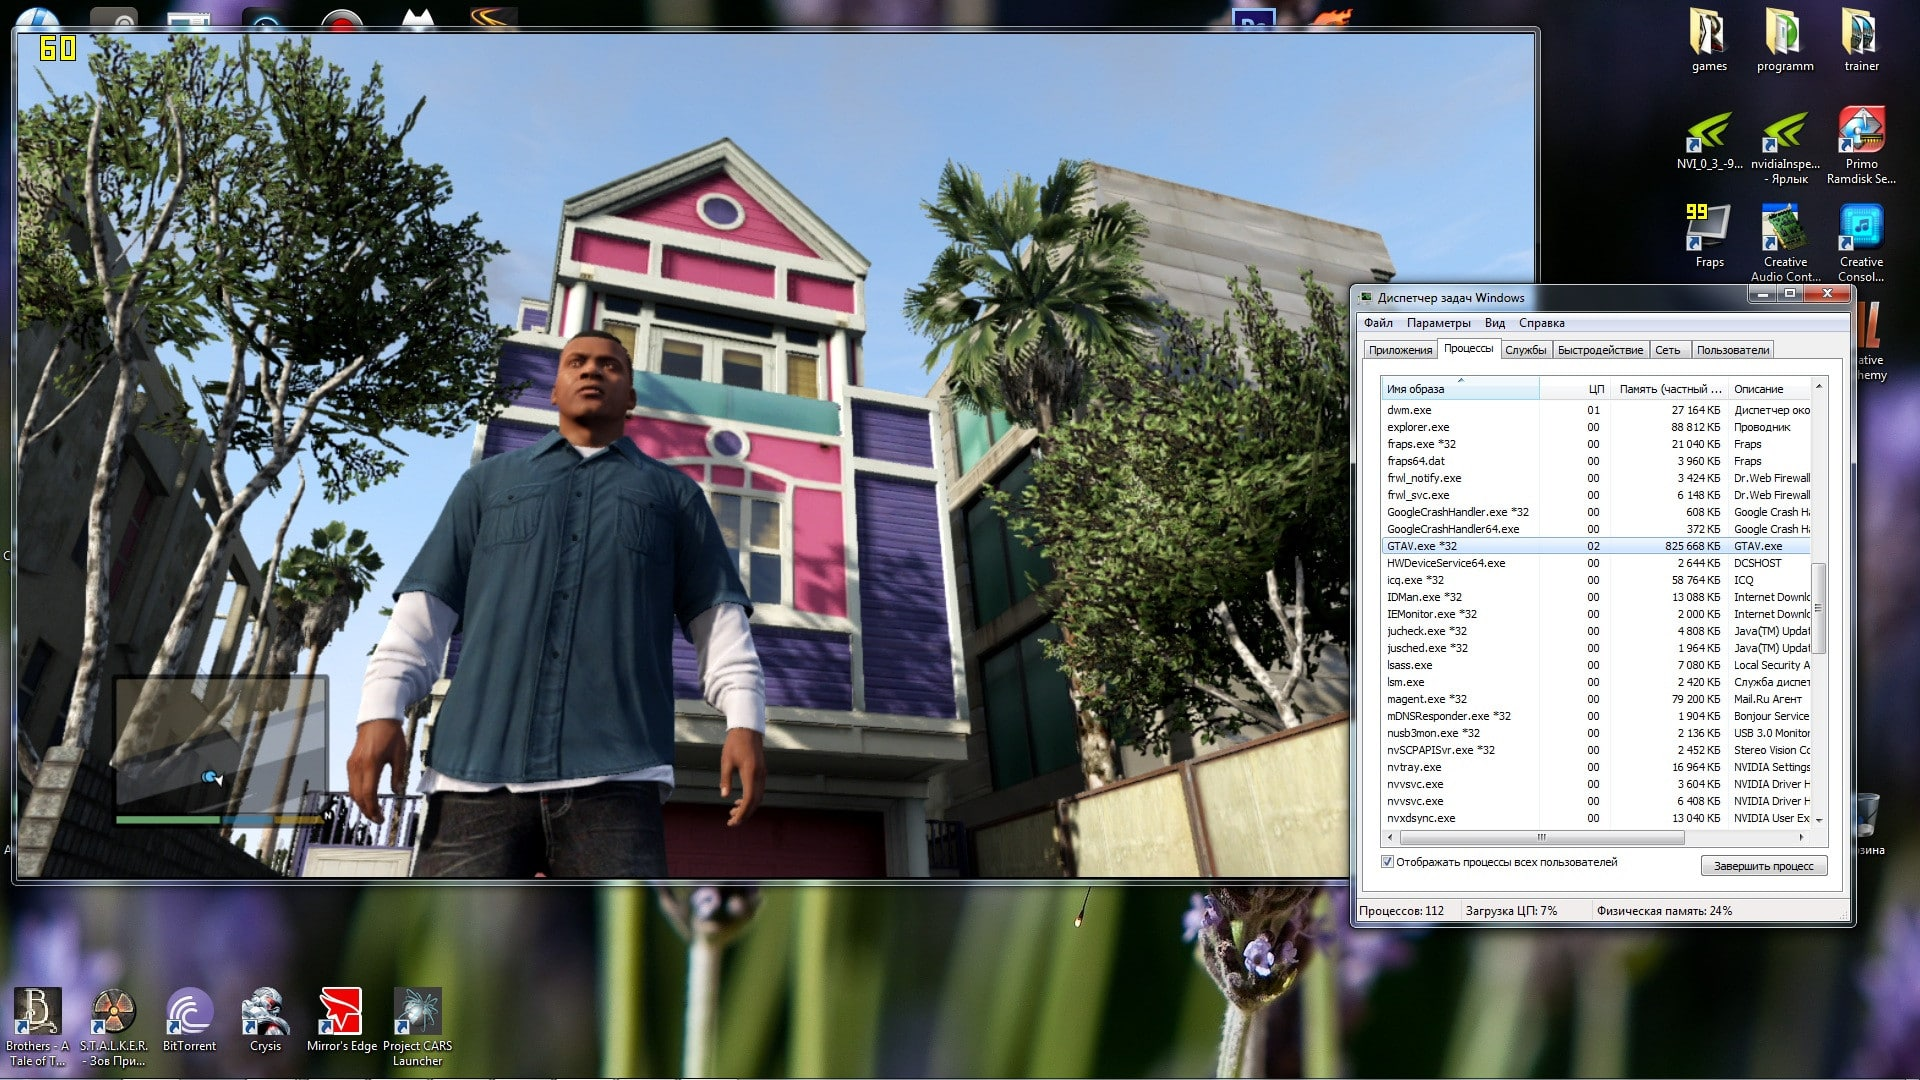 GTA V For PC Shows Up On Reddit – Fake Or Not? | eTeknix